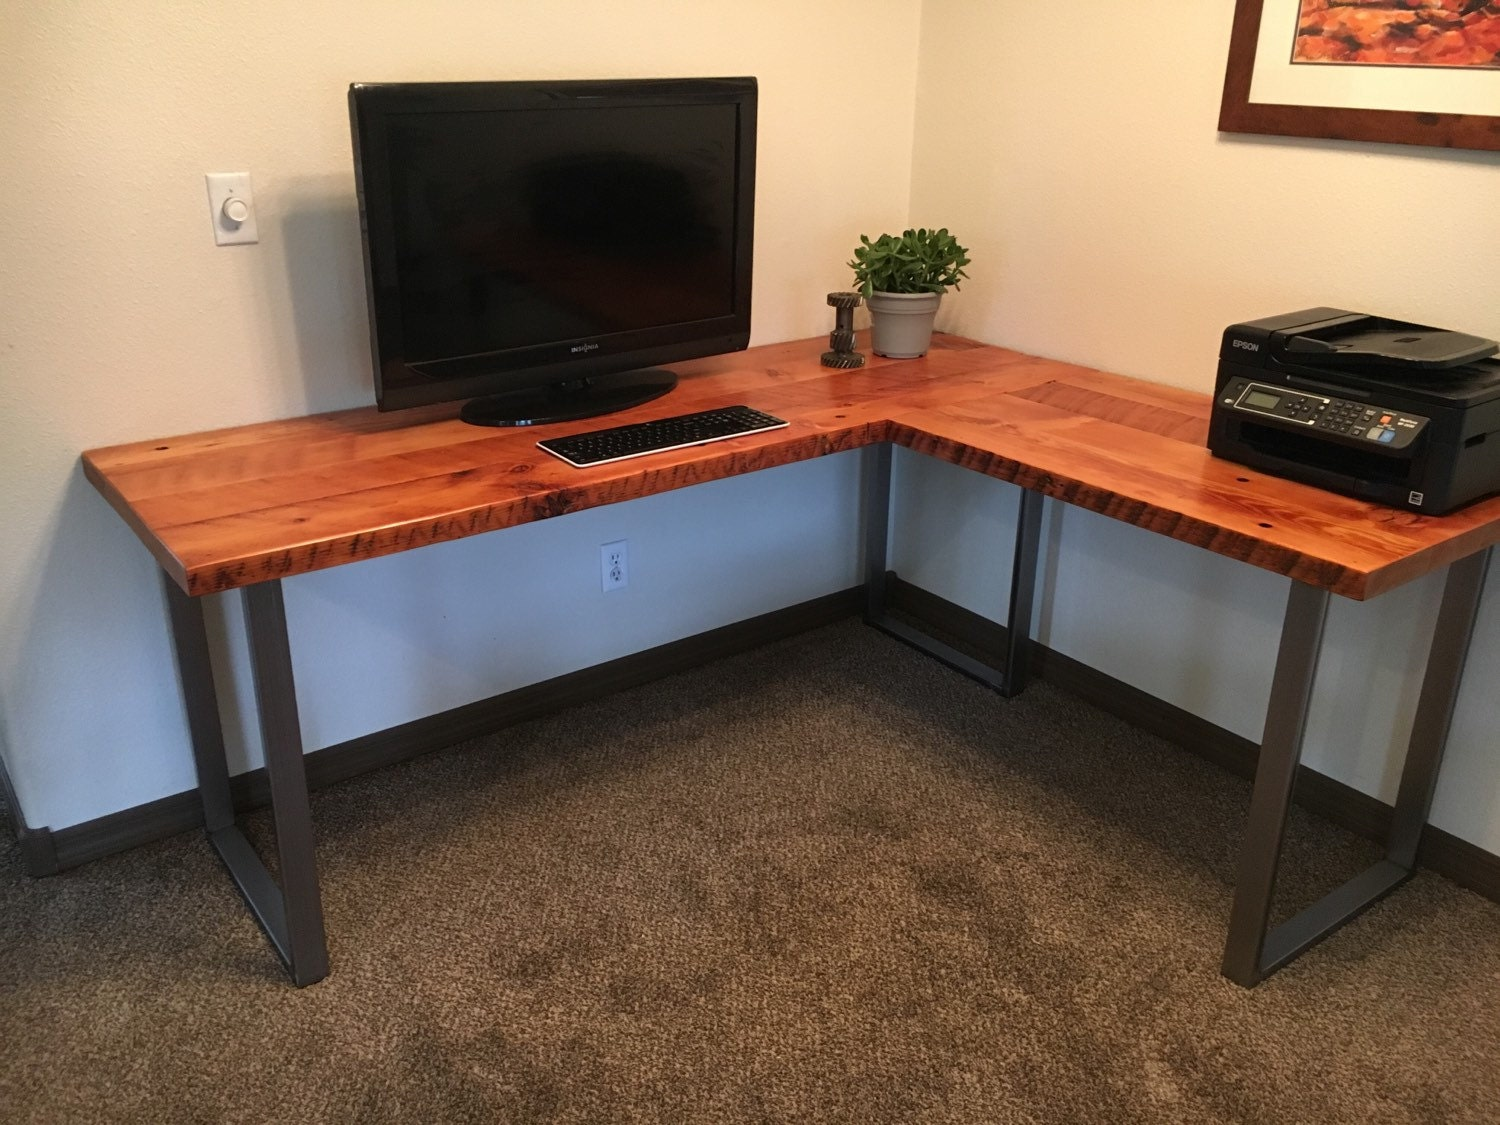 L-shaped Desk. Reclaimed wood desk. Wood and steel desk.